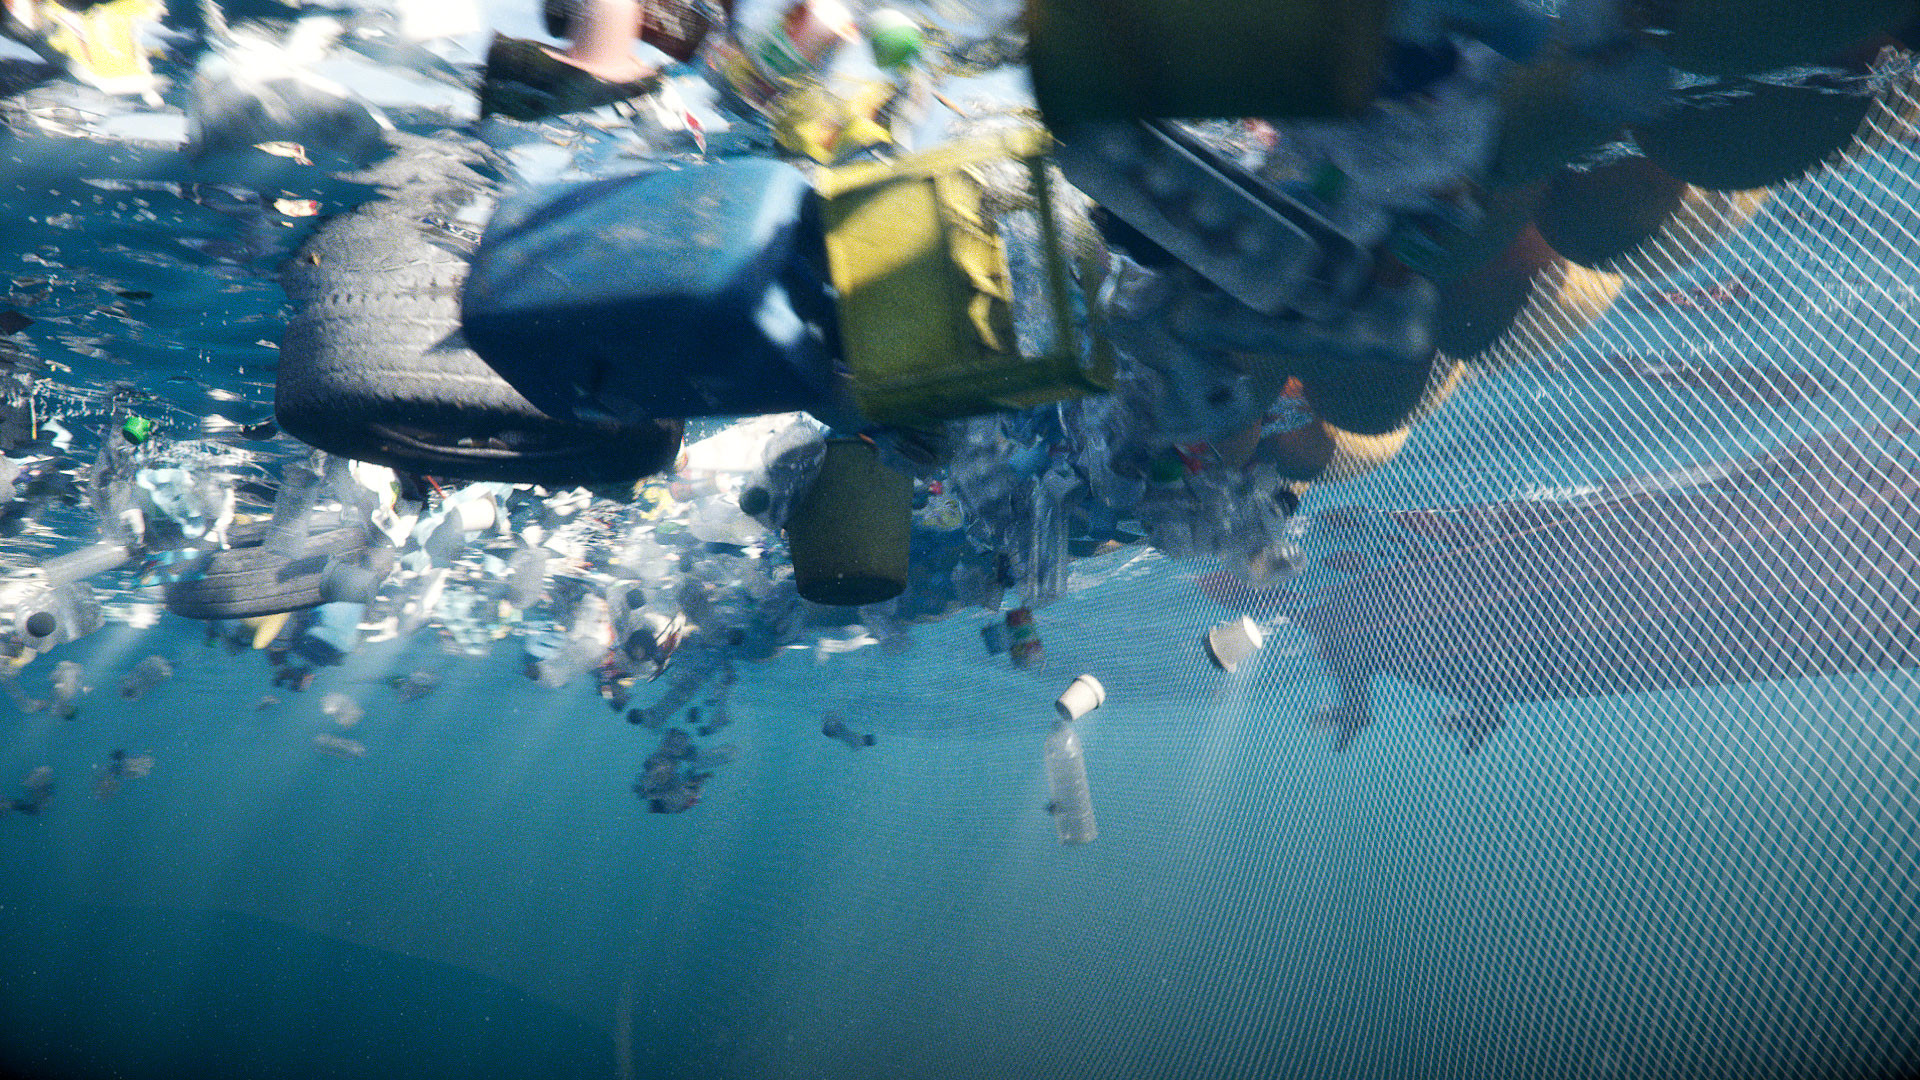 The Ocean Cleanup System 001/B – A Fanart Full CG Animated RnD Project